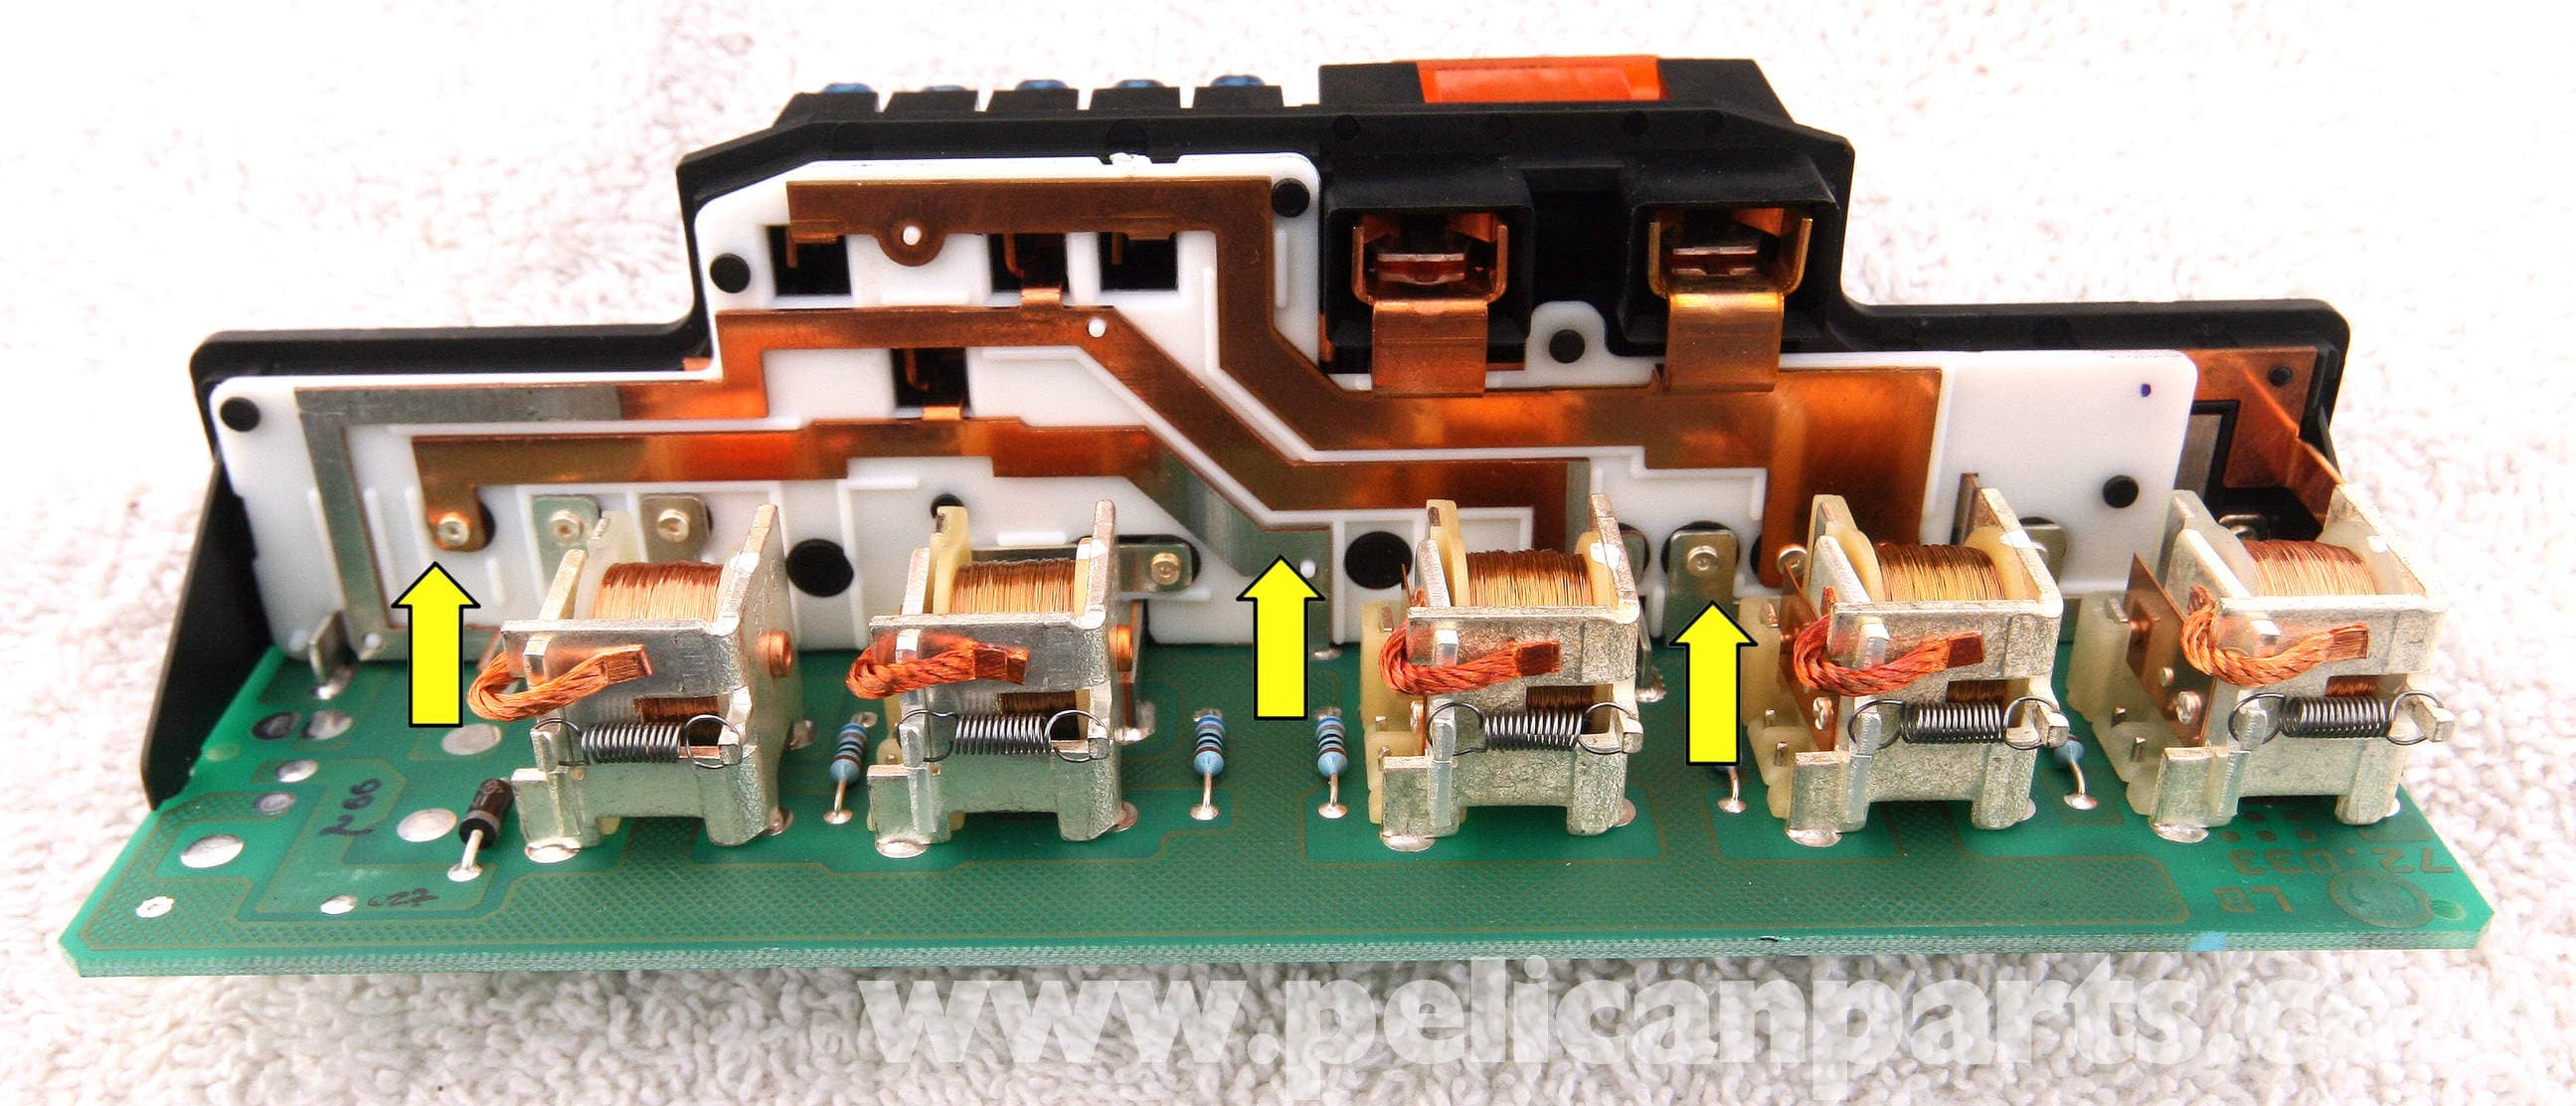 Mercedes Benz Slk 230 K40 Overload Protection Relay Repair 1998 Engine Cooling Diagram Large Image Extra